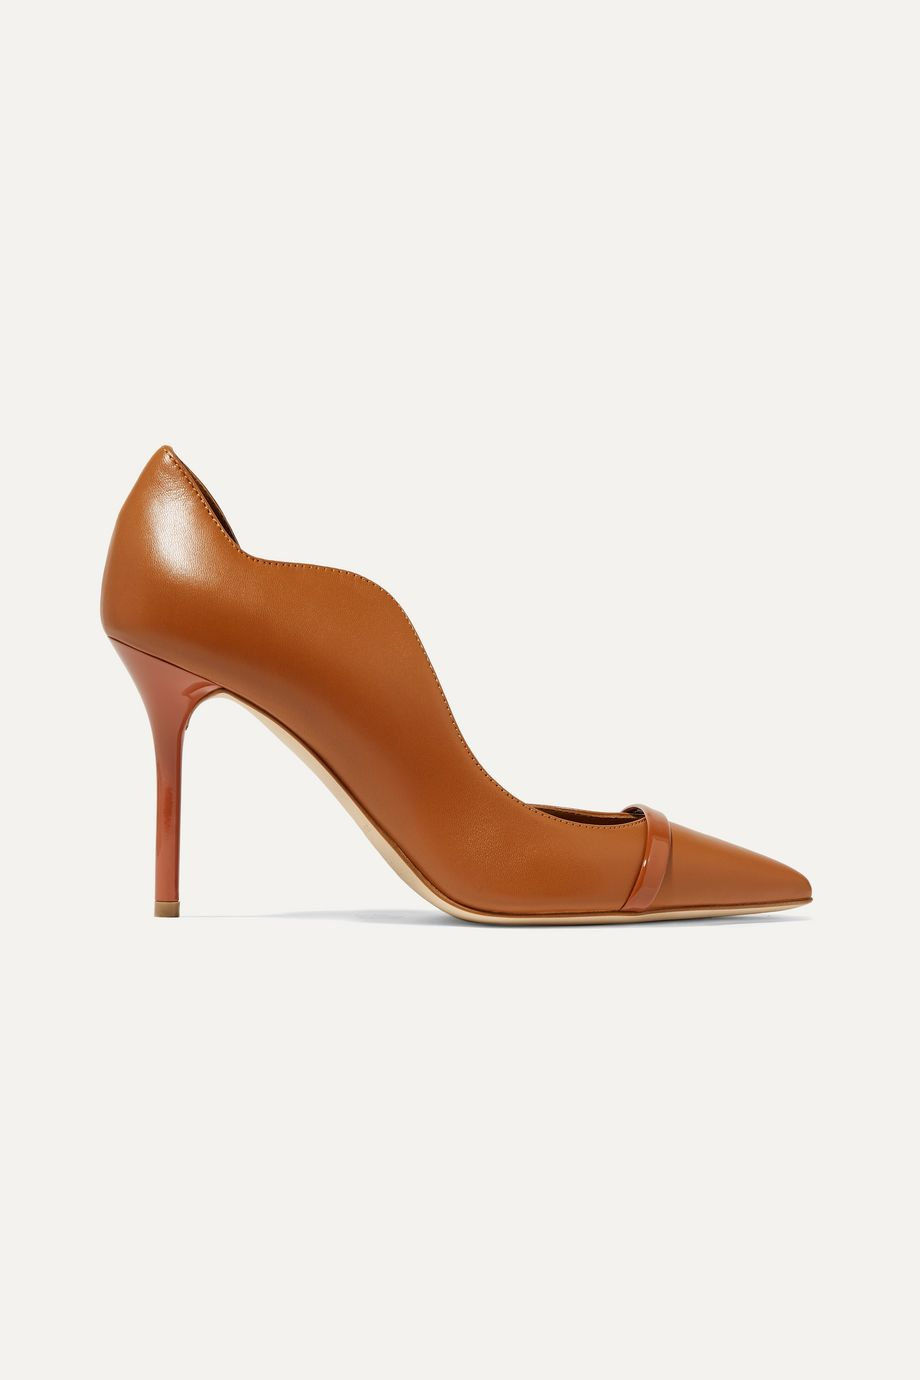 Malone Souliers Morrissey 85 patent-trimmed leather pumps